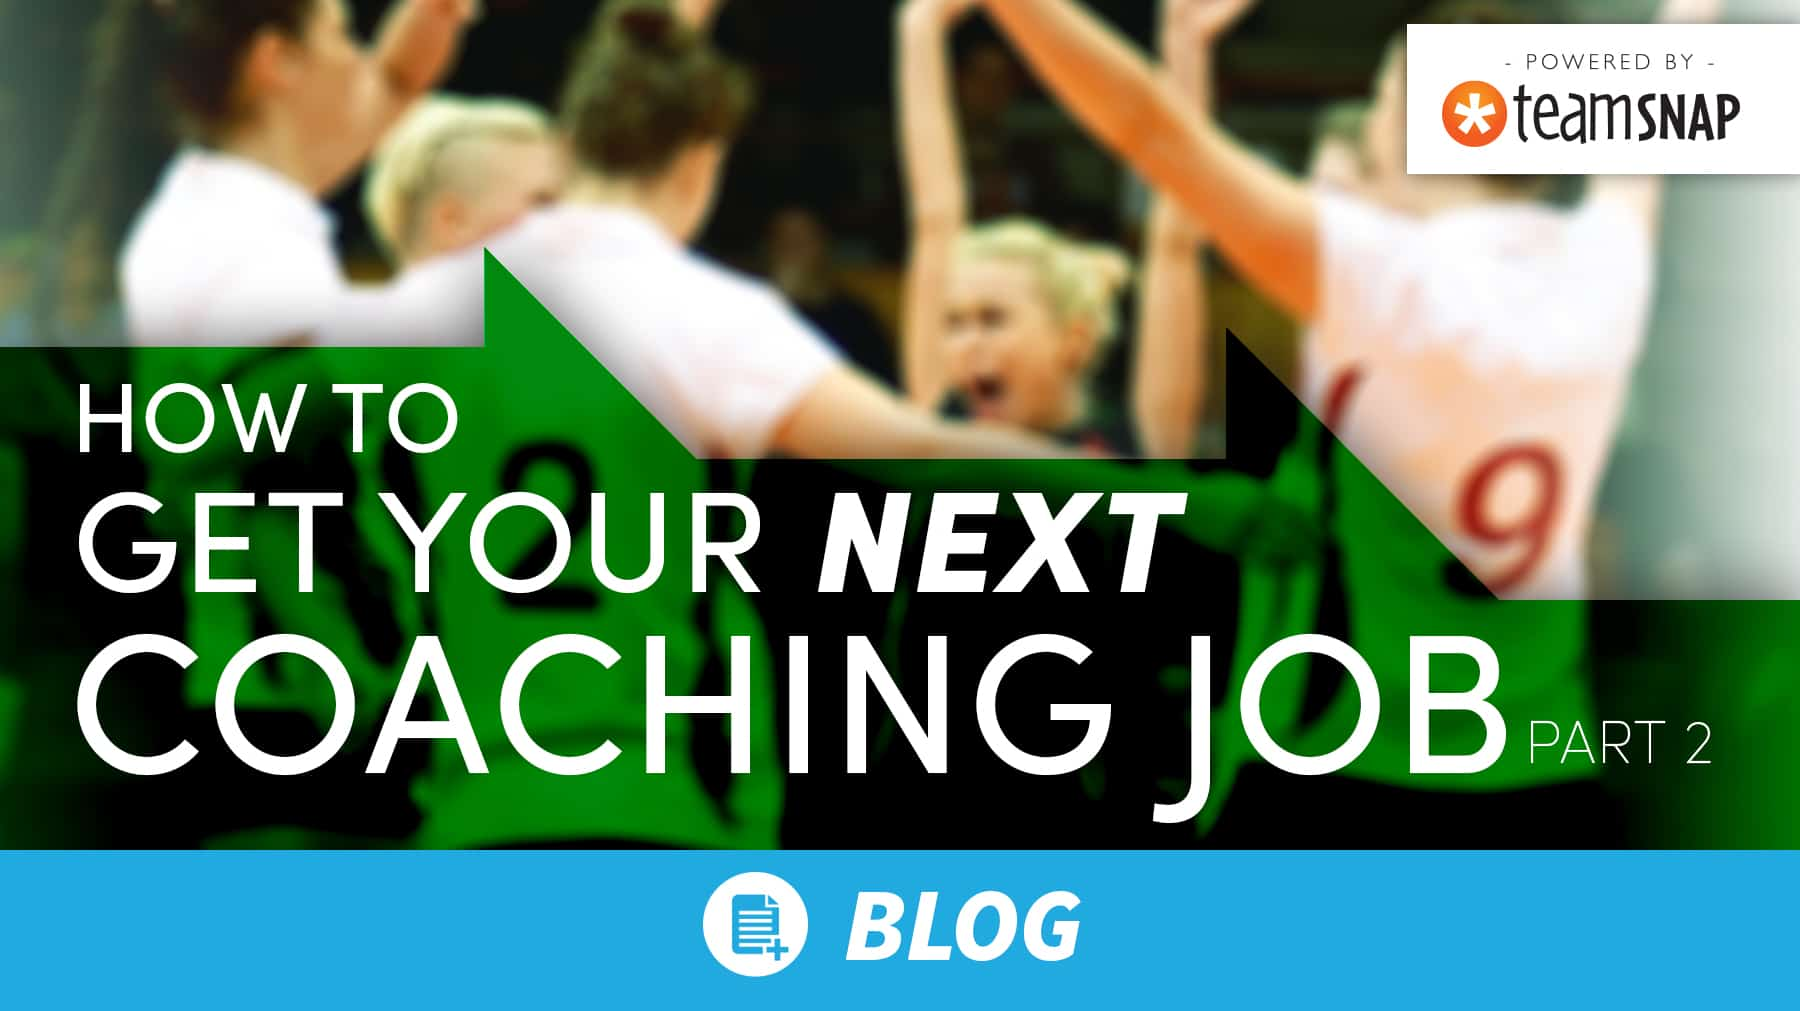 How to get your NEXT coaching job: Part 2